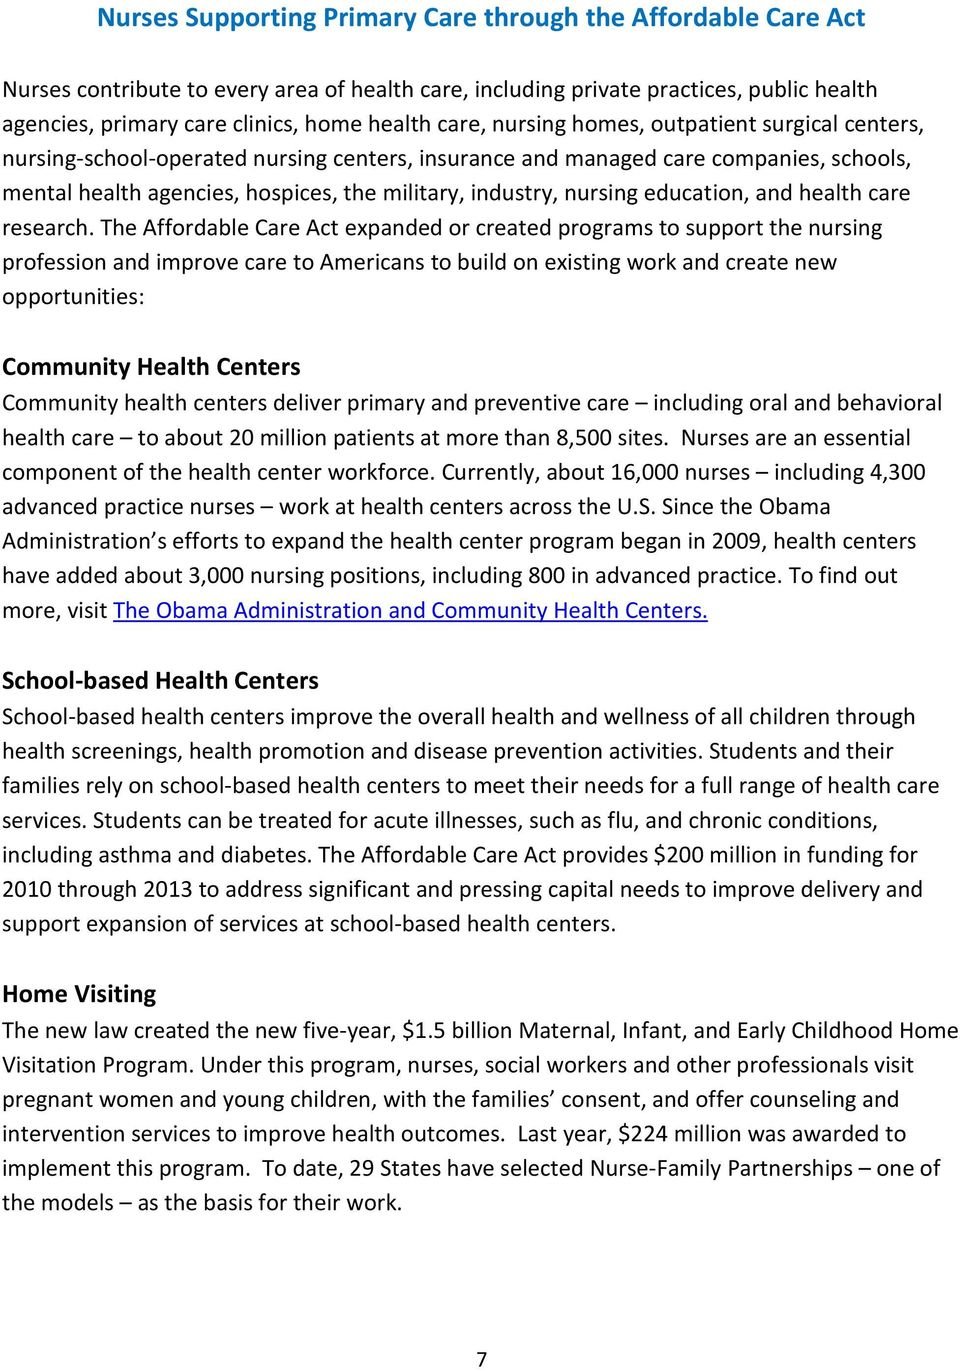 nursing education, and health care research.